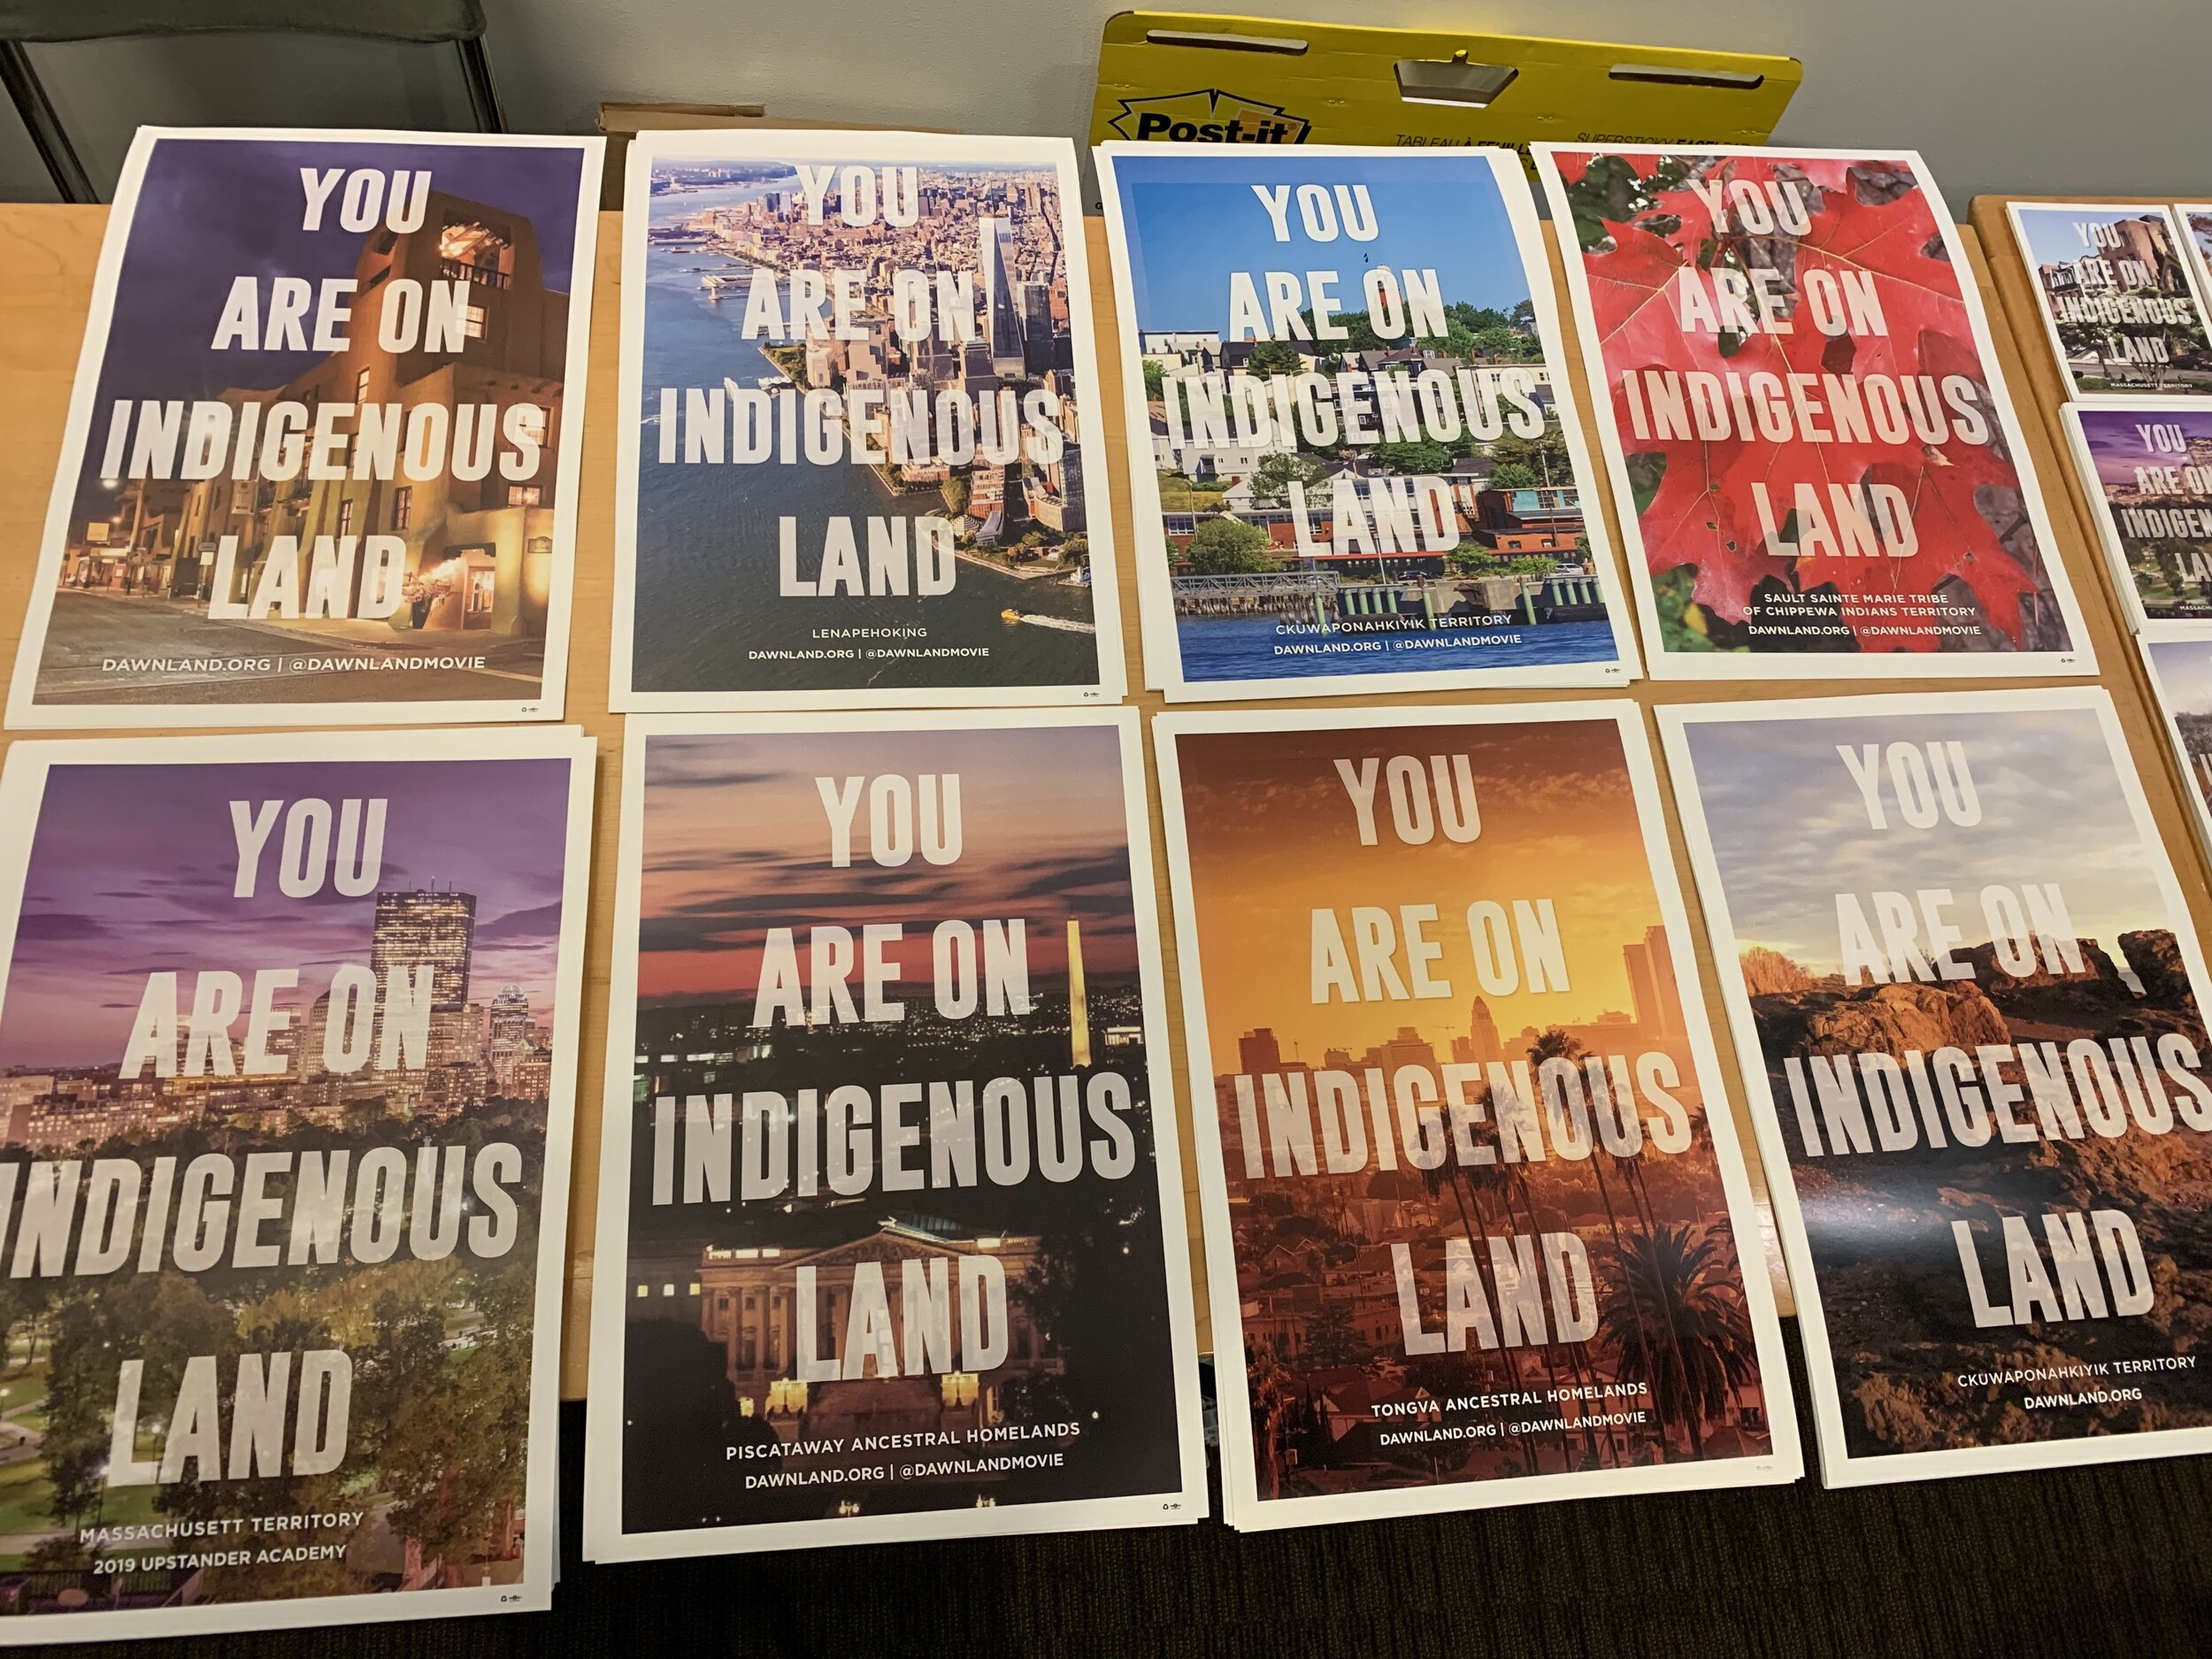 You are on Indigenous Land